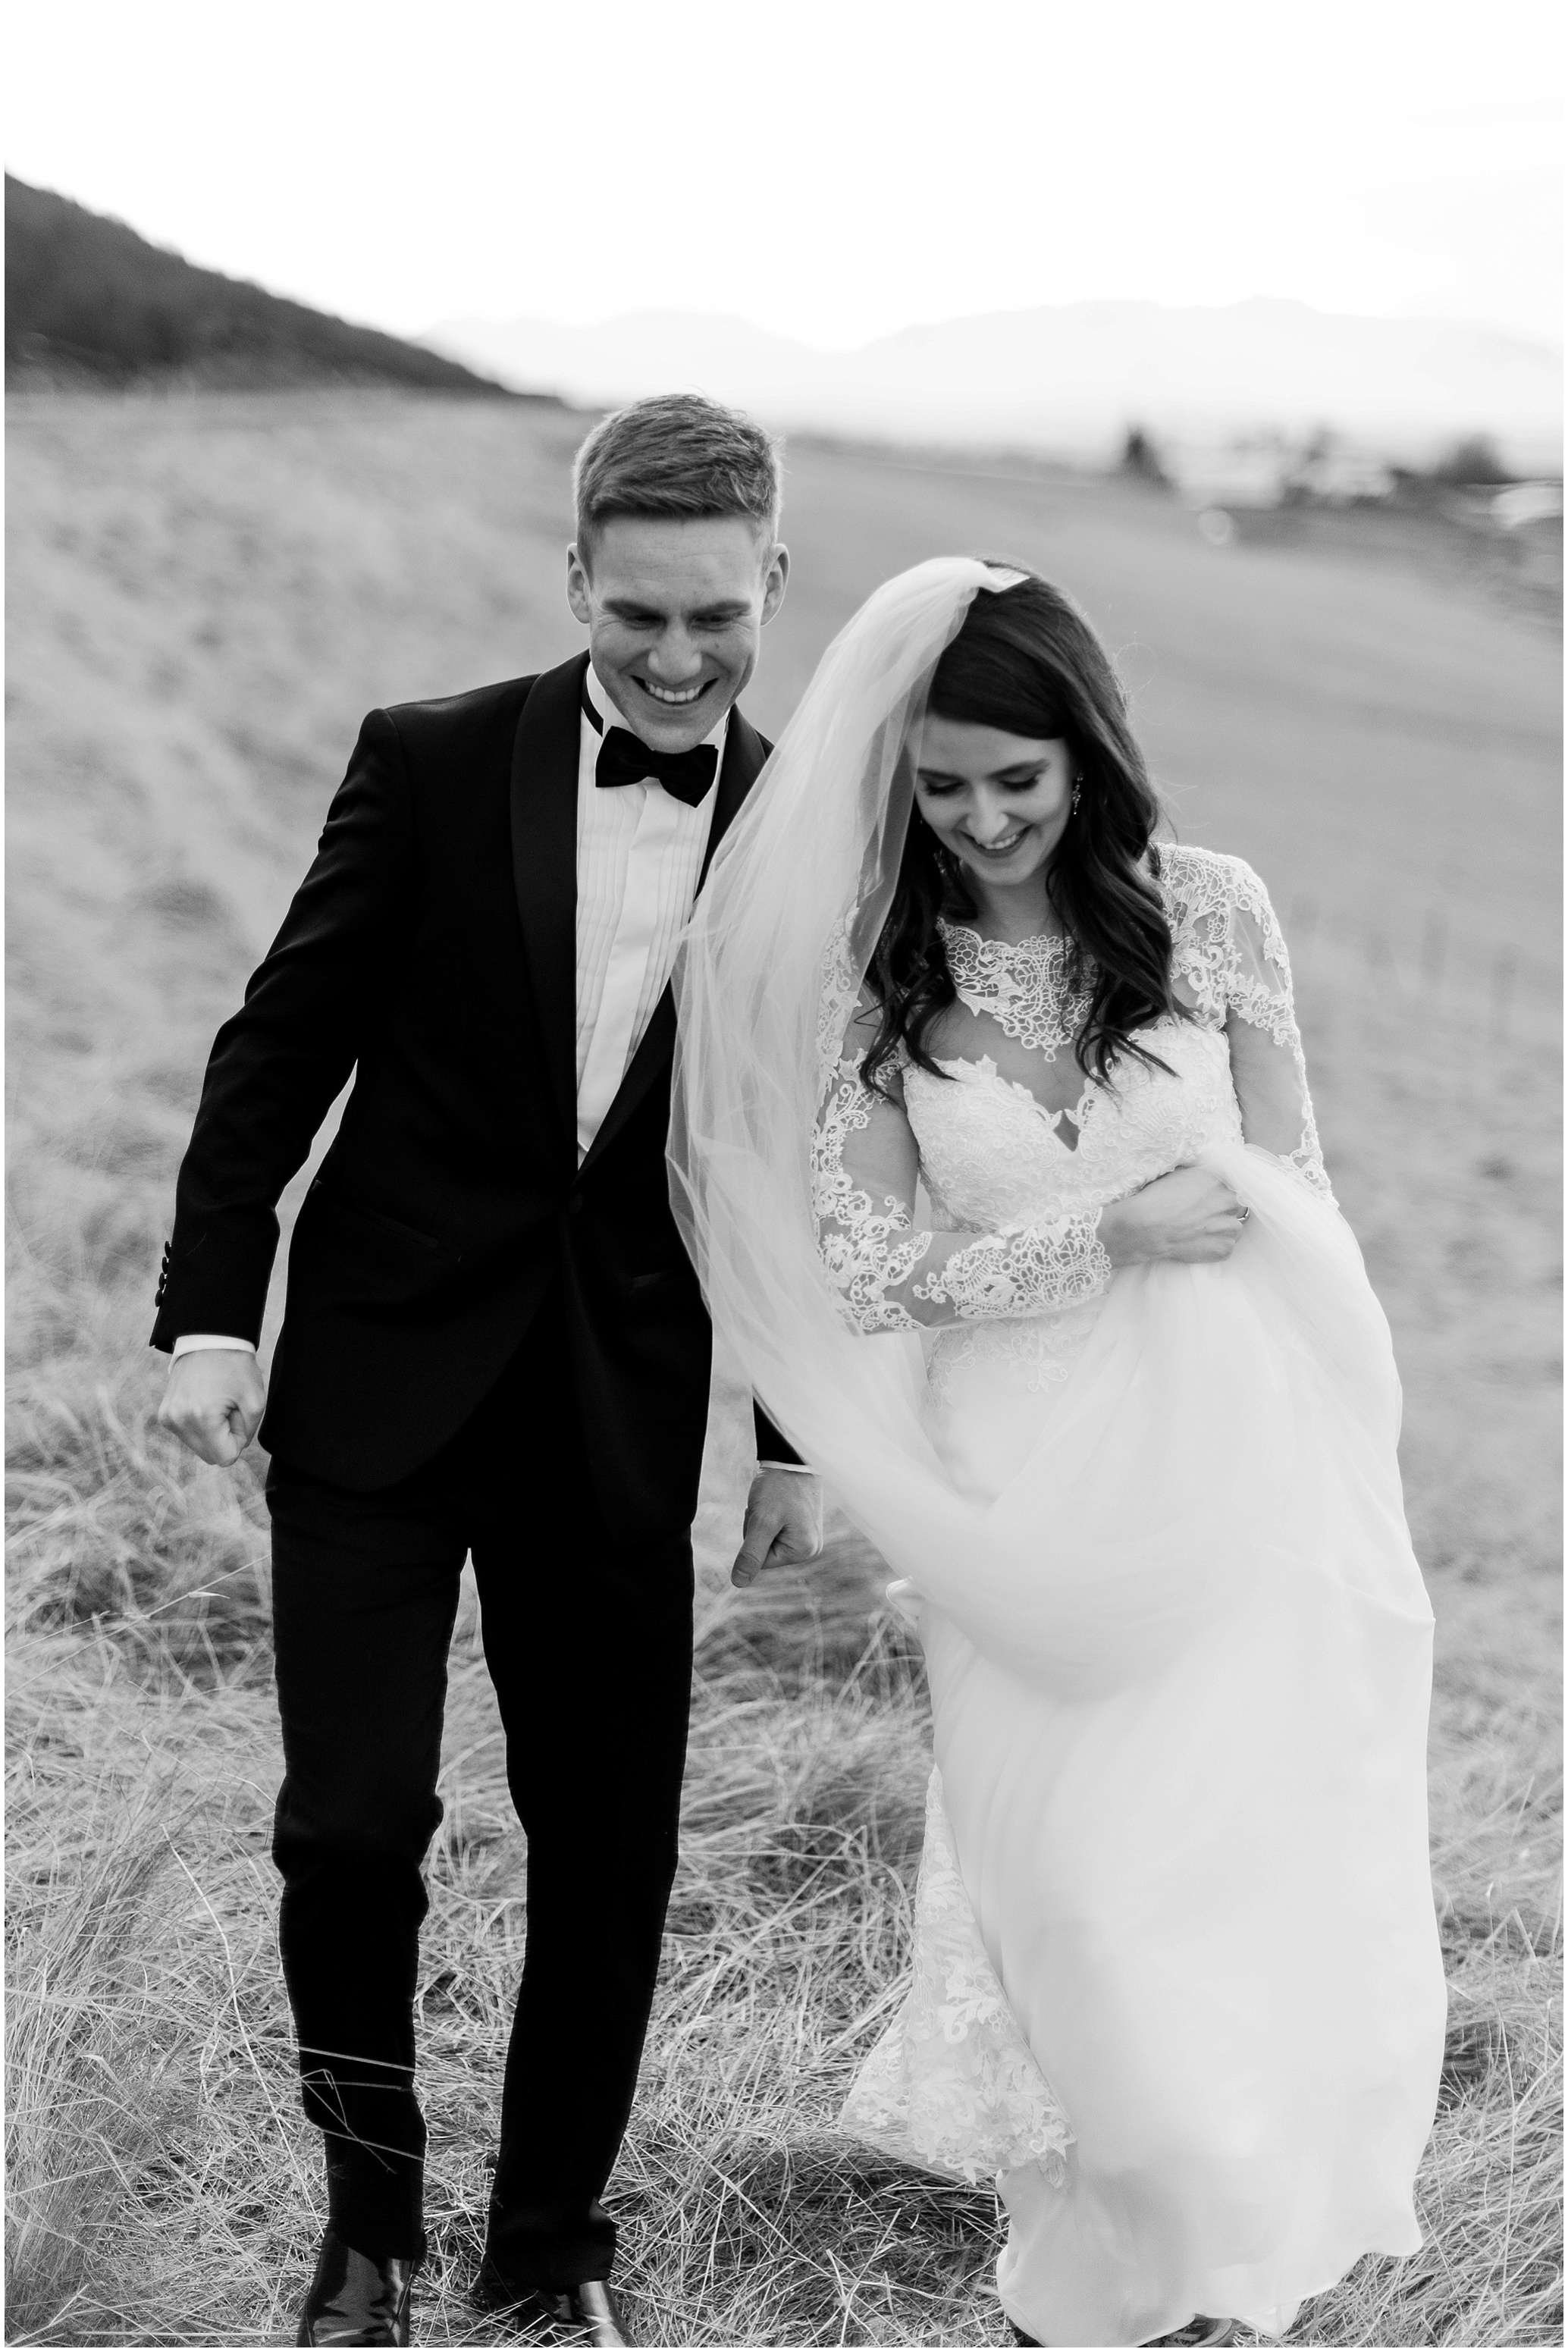 Hannah Leigh Photography Akureyri Iceland Wedding_3248.jpg